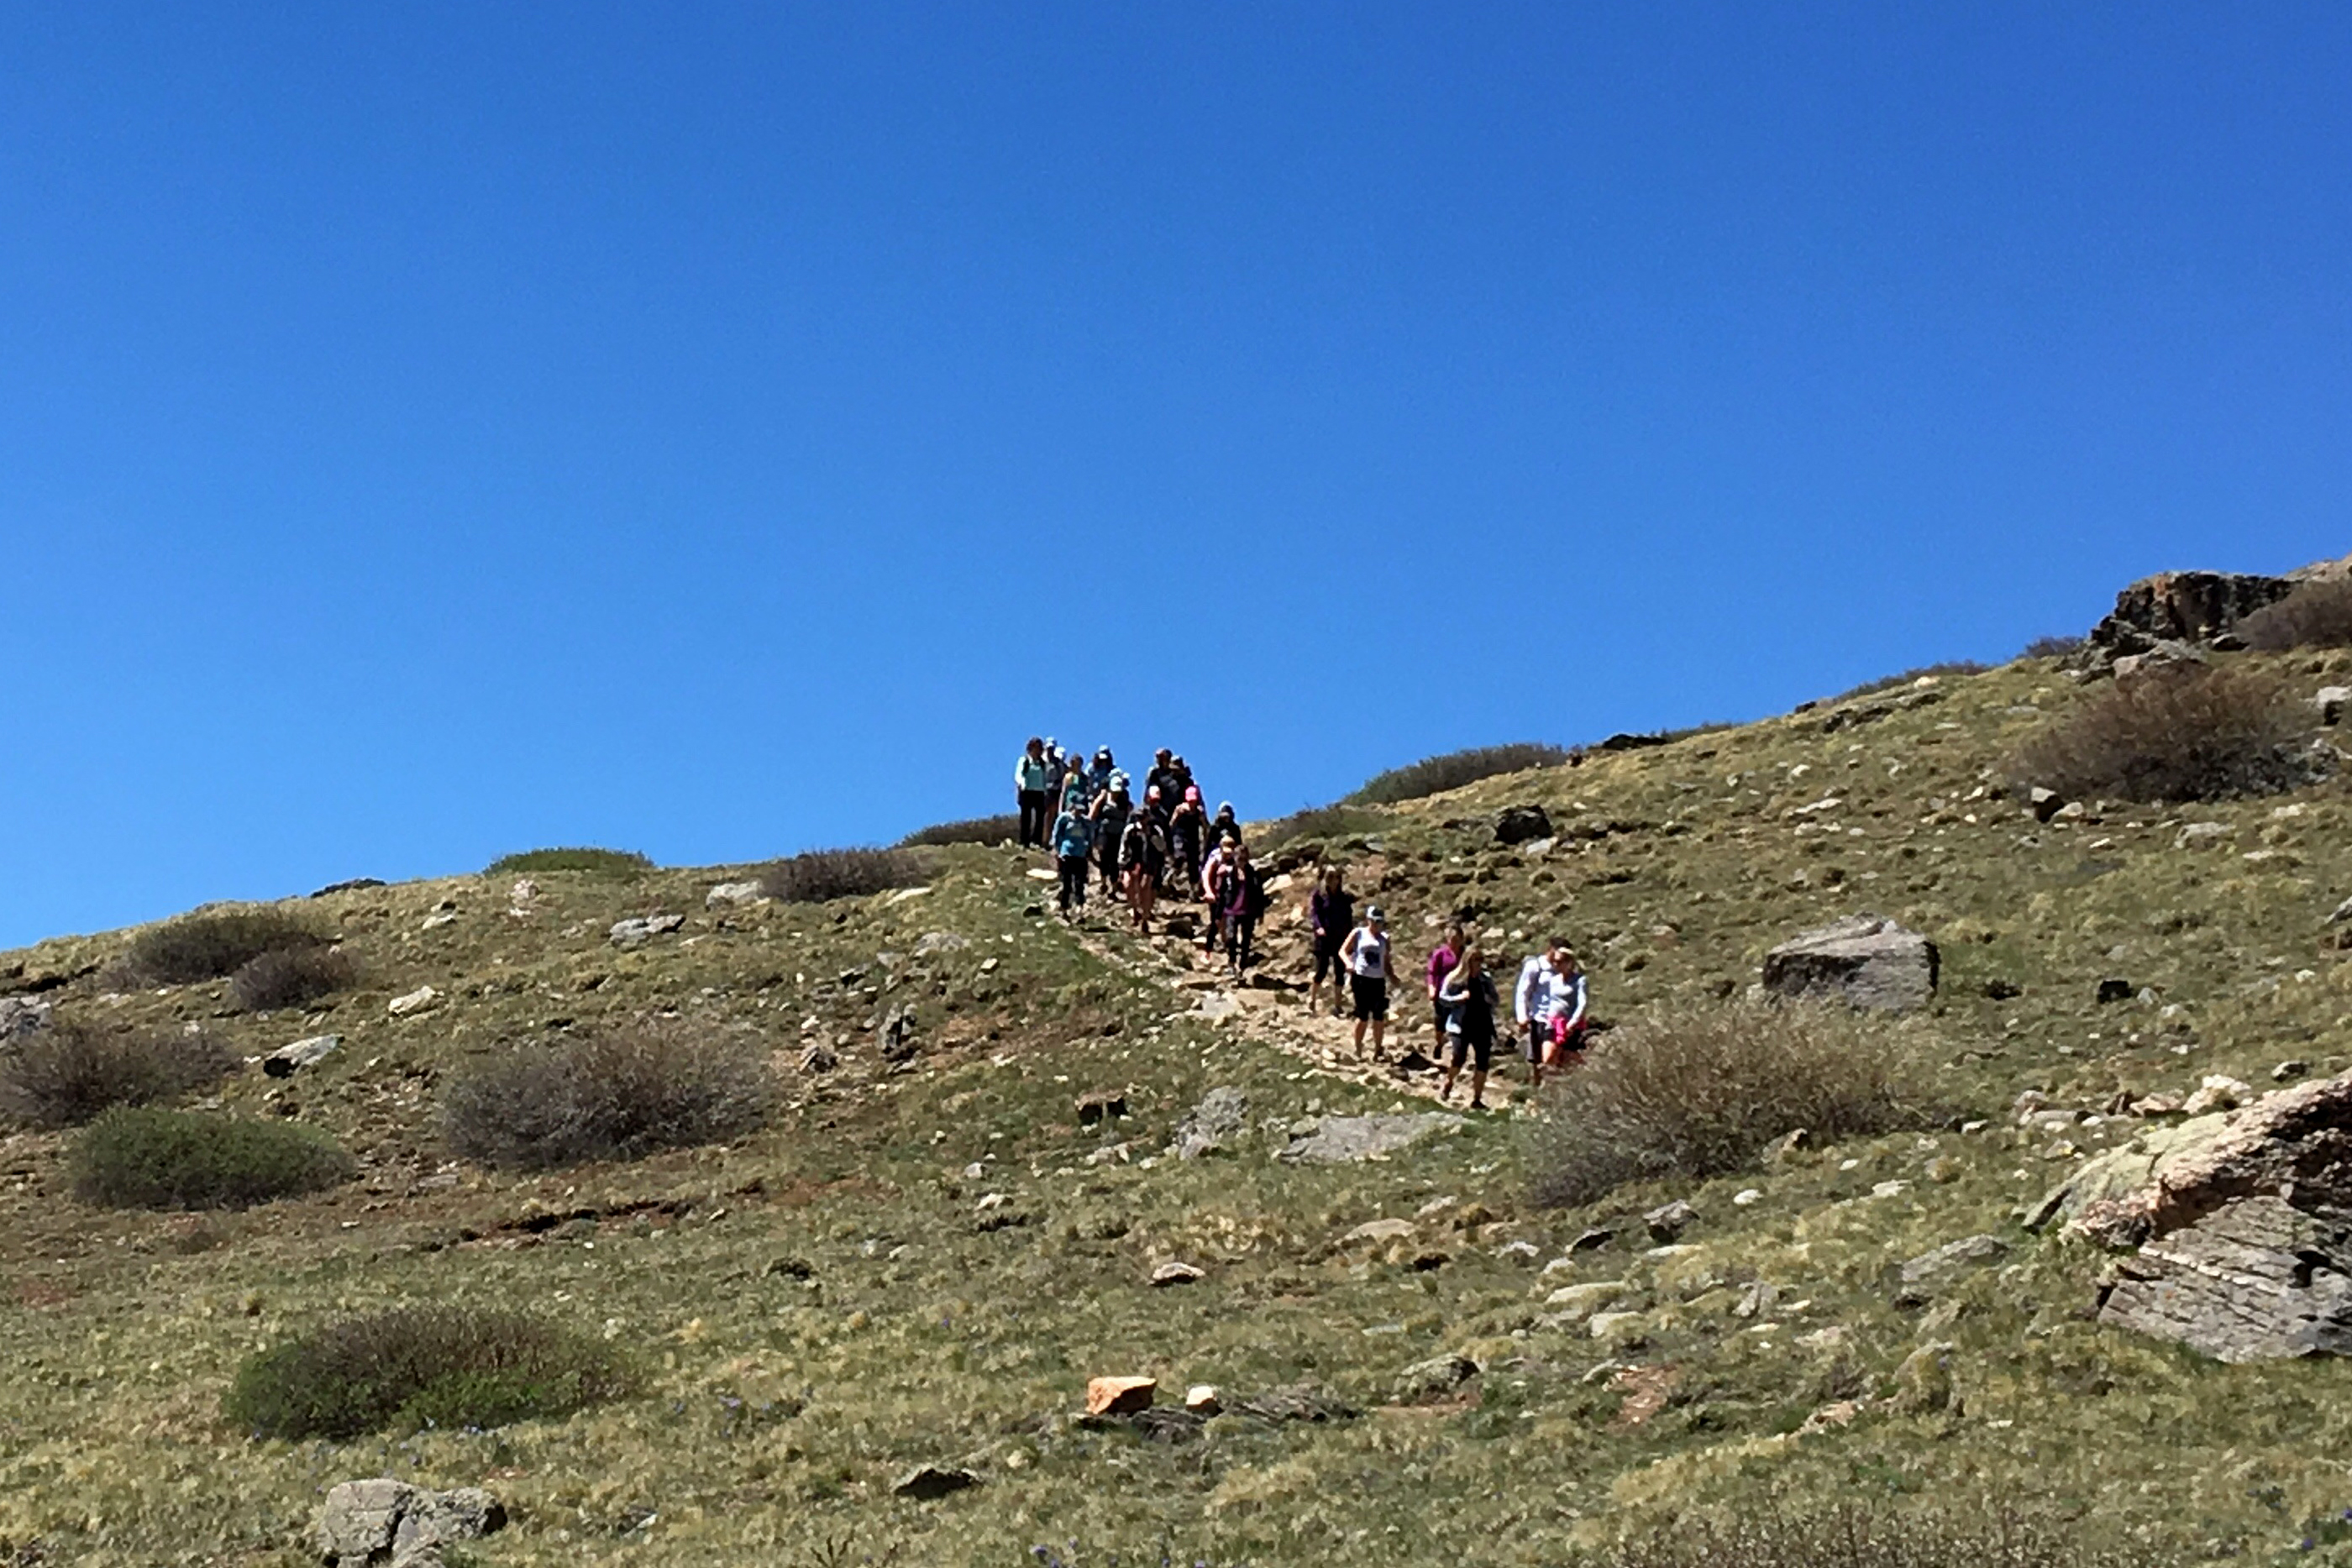 A large group of hikers on the trail from Square Top Lakes to Guanella Pass.